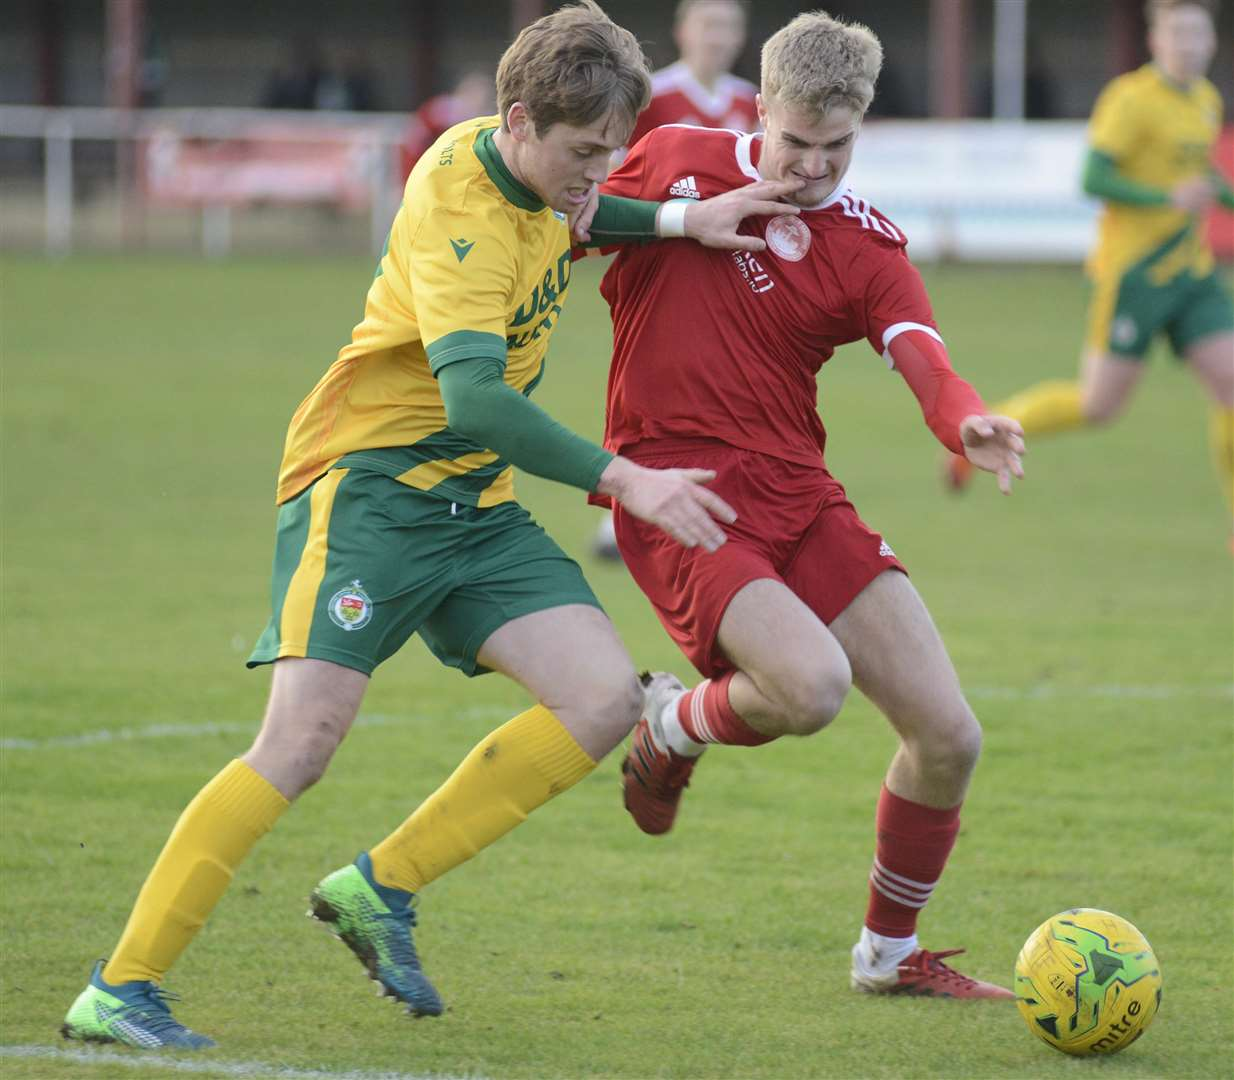 Ashford's Tom O'Connor, left, battles for possession against Hythe Picture: Paul Amos